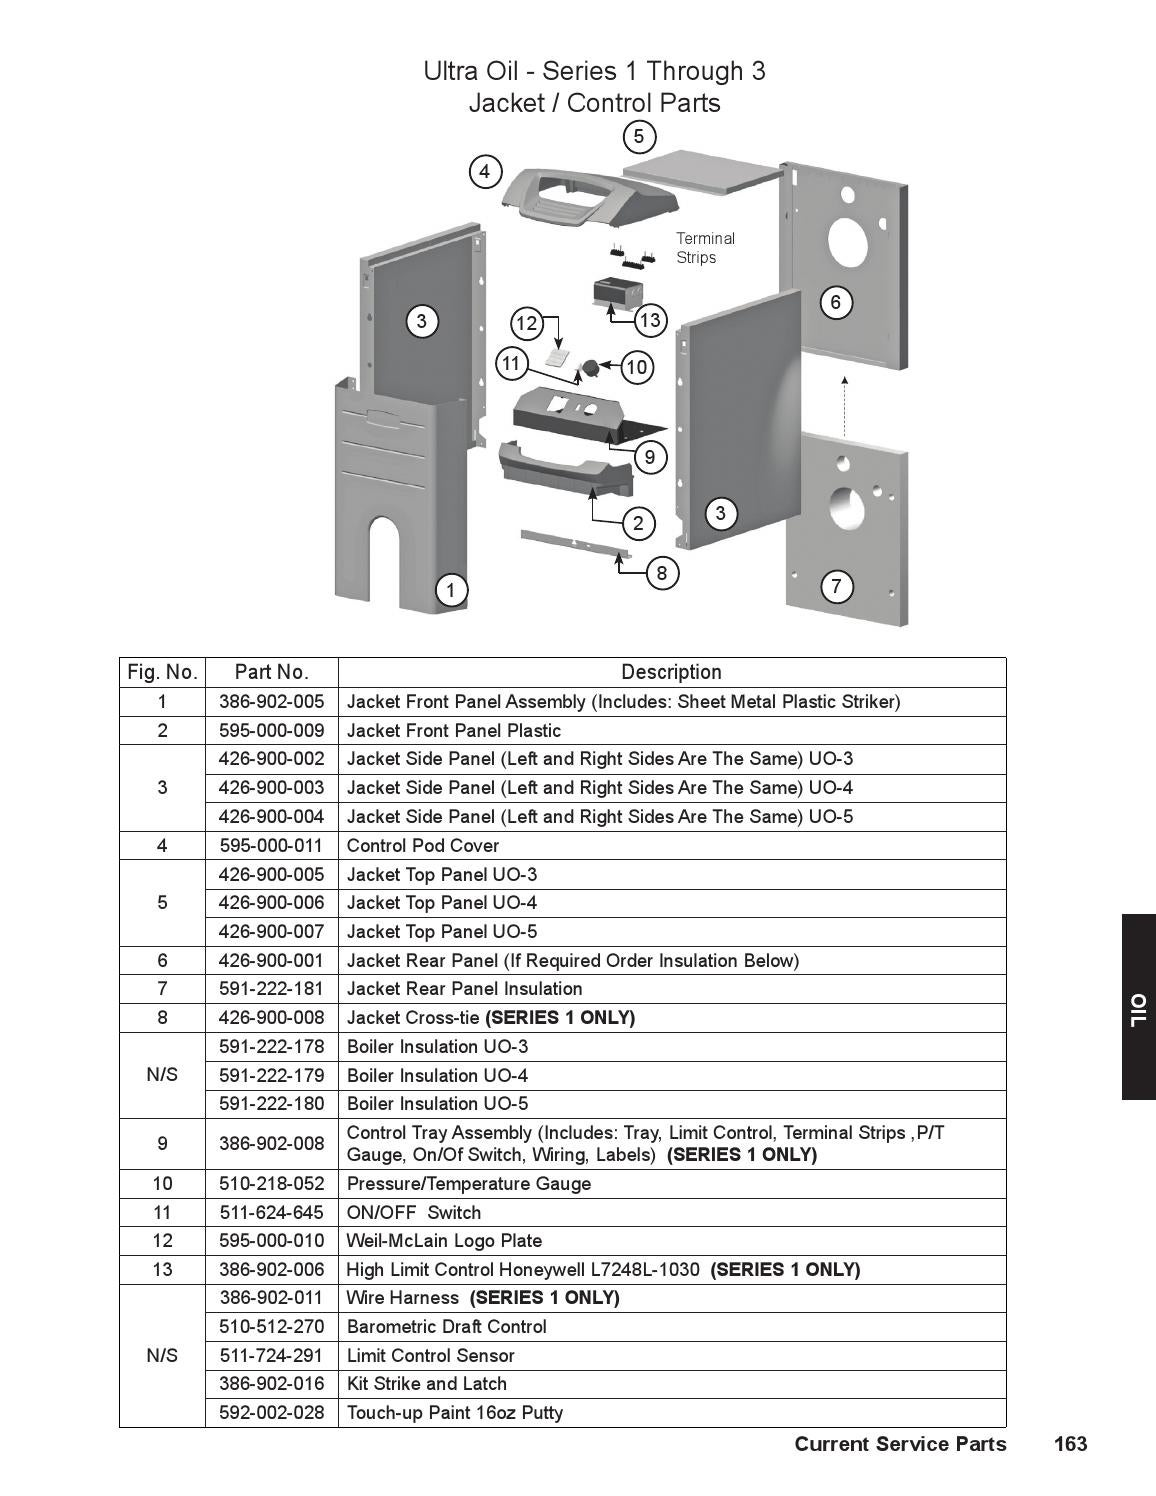 2015 Service Parts Catalog By Weil Mclain Issuu Boiler Schematic Diagram